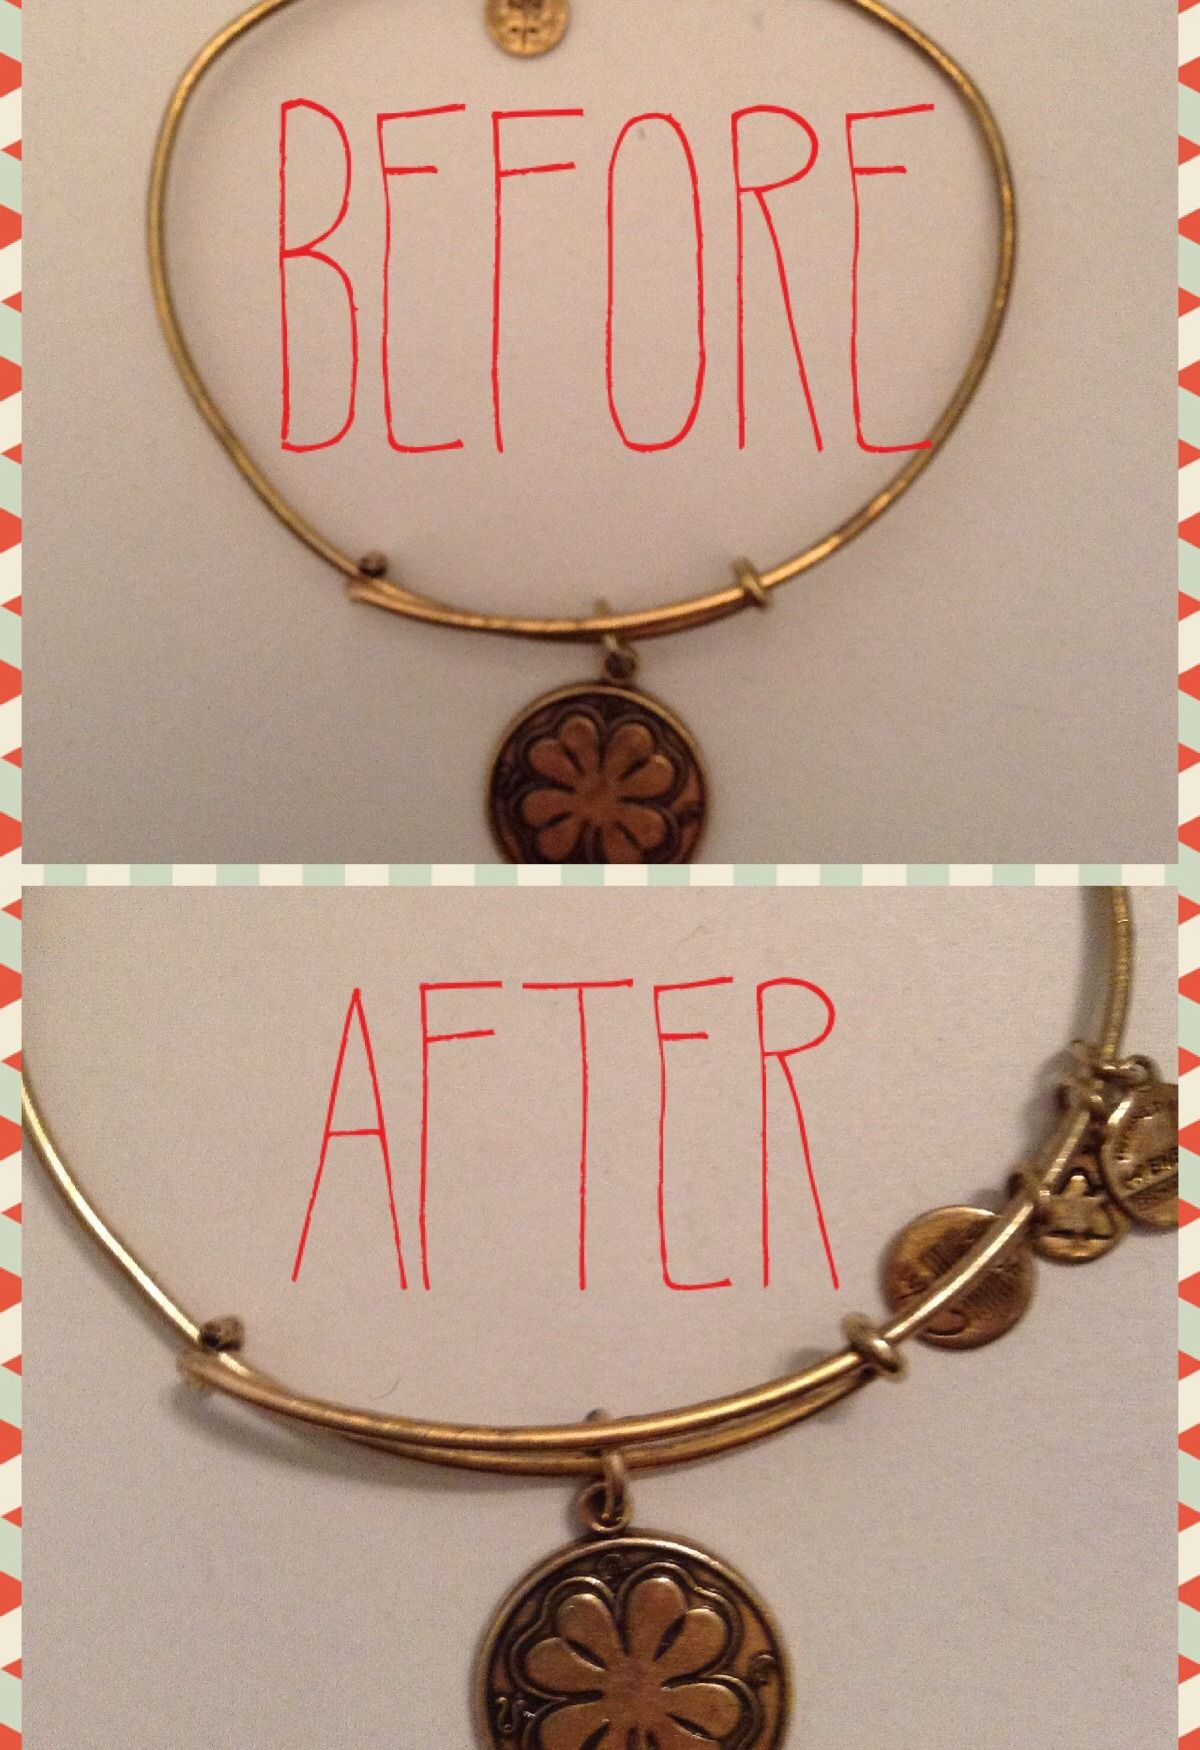 In This Instructable I Will Be Showing You How To Naturally Remove Tarnish From An Alex And Ani Bracelet Have Made Previous Instructables Explaining